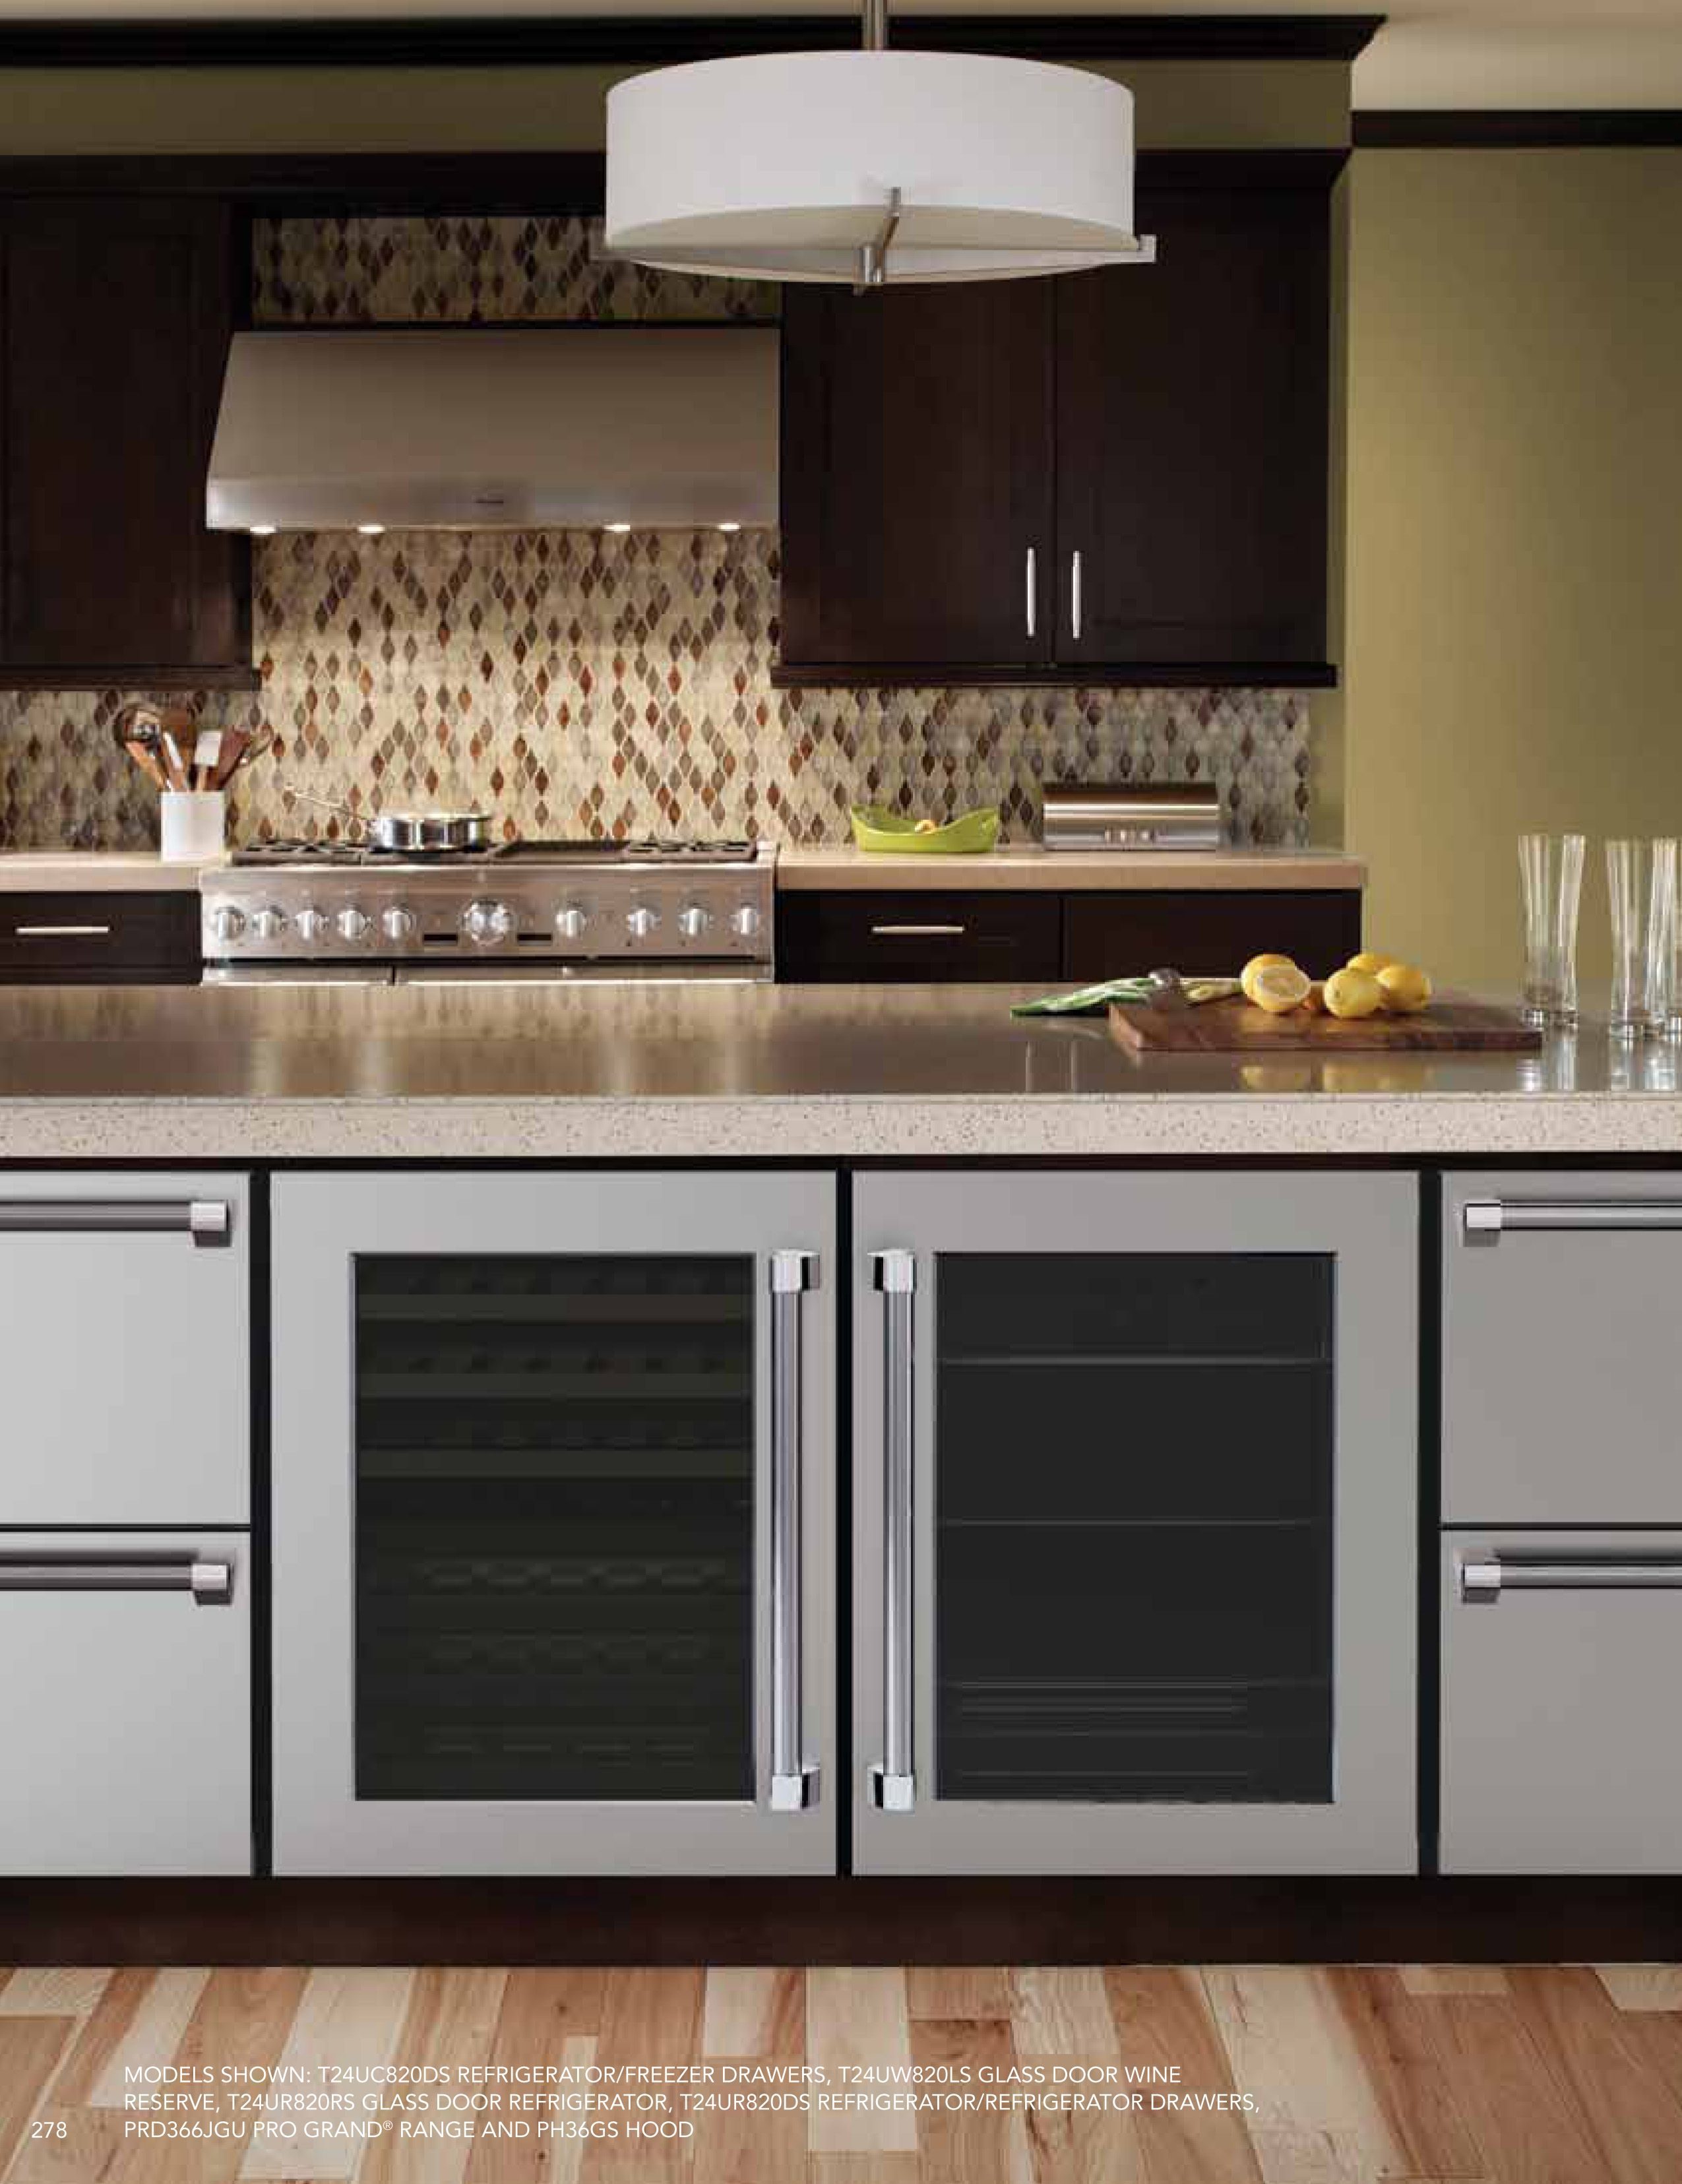 thermador wine. thermador undercounter refrigeration. #refrigerator #thermador #hometech #swfl visit our display wine a